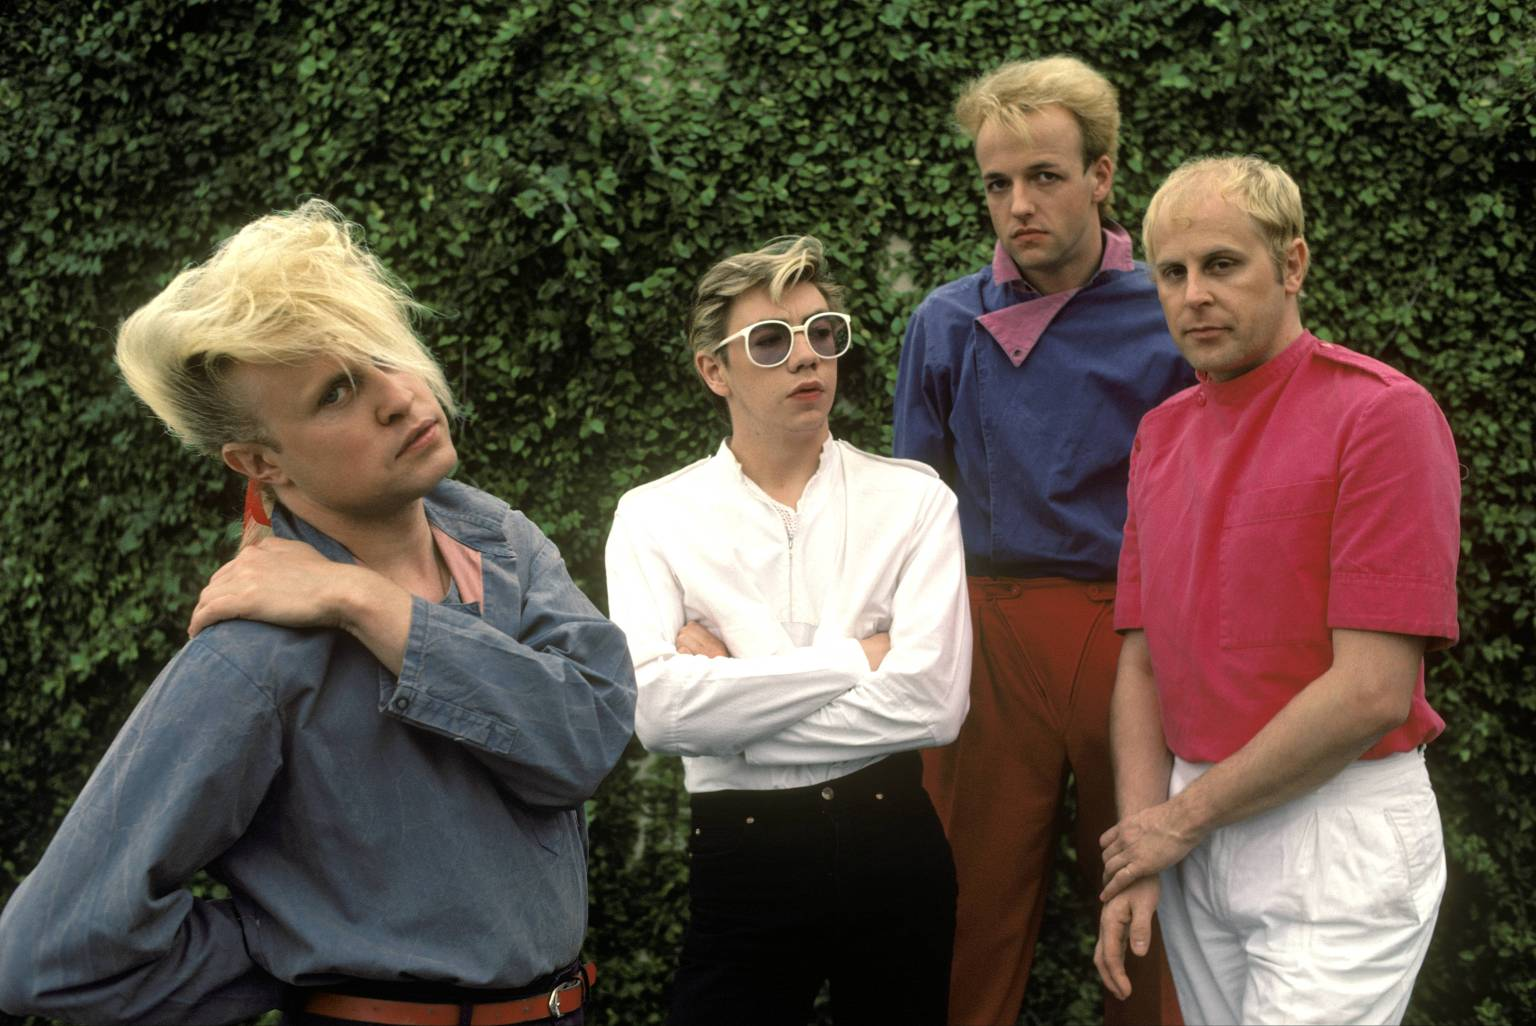 We Are The 80s A Flock Of Seagulls 23027 Movieweb